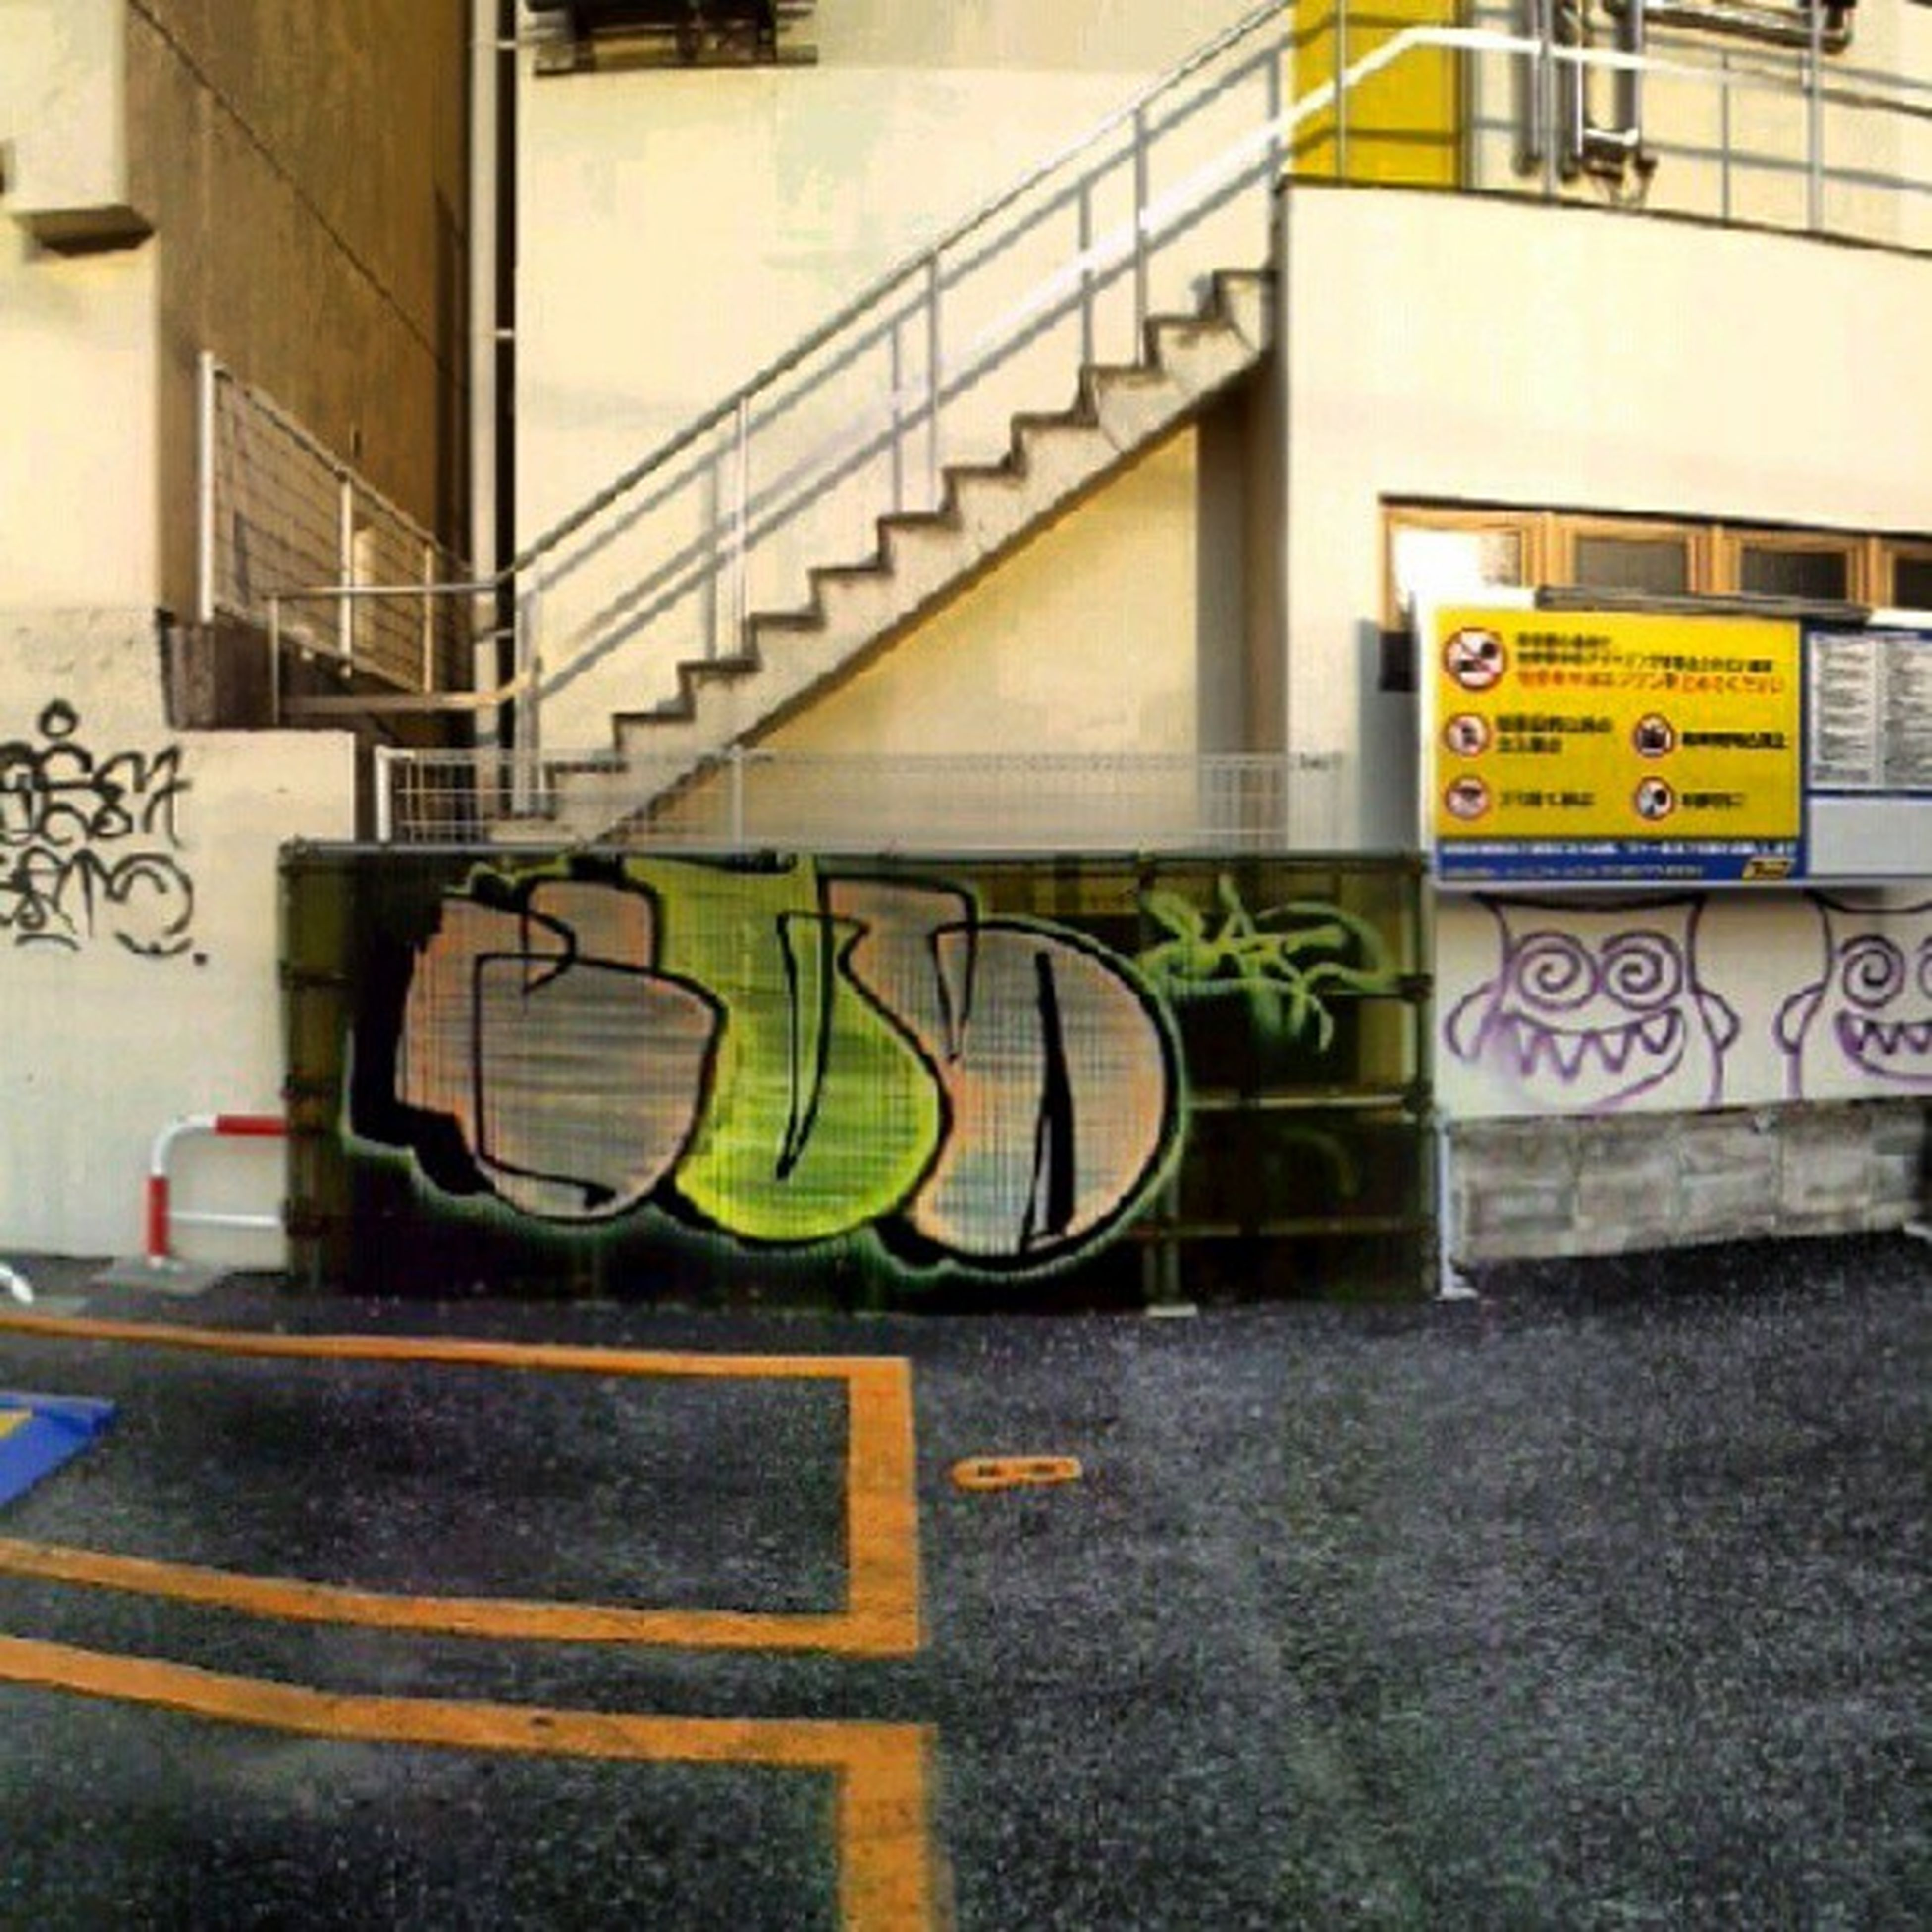 architecture, built structure, building exterior, yellow, text, wall - building feature, graffiti, railing, western script, transportation, building, street, day, city, no people, sunlight, communication, outdoors, wall, steps